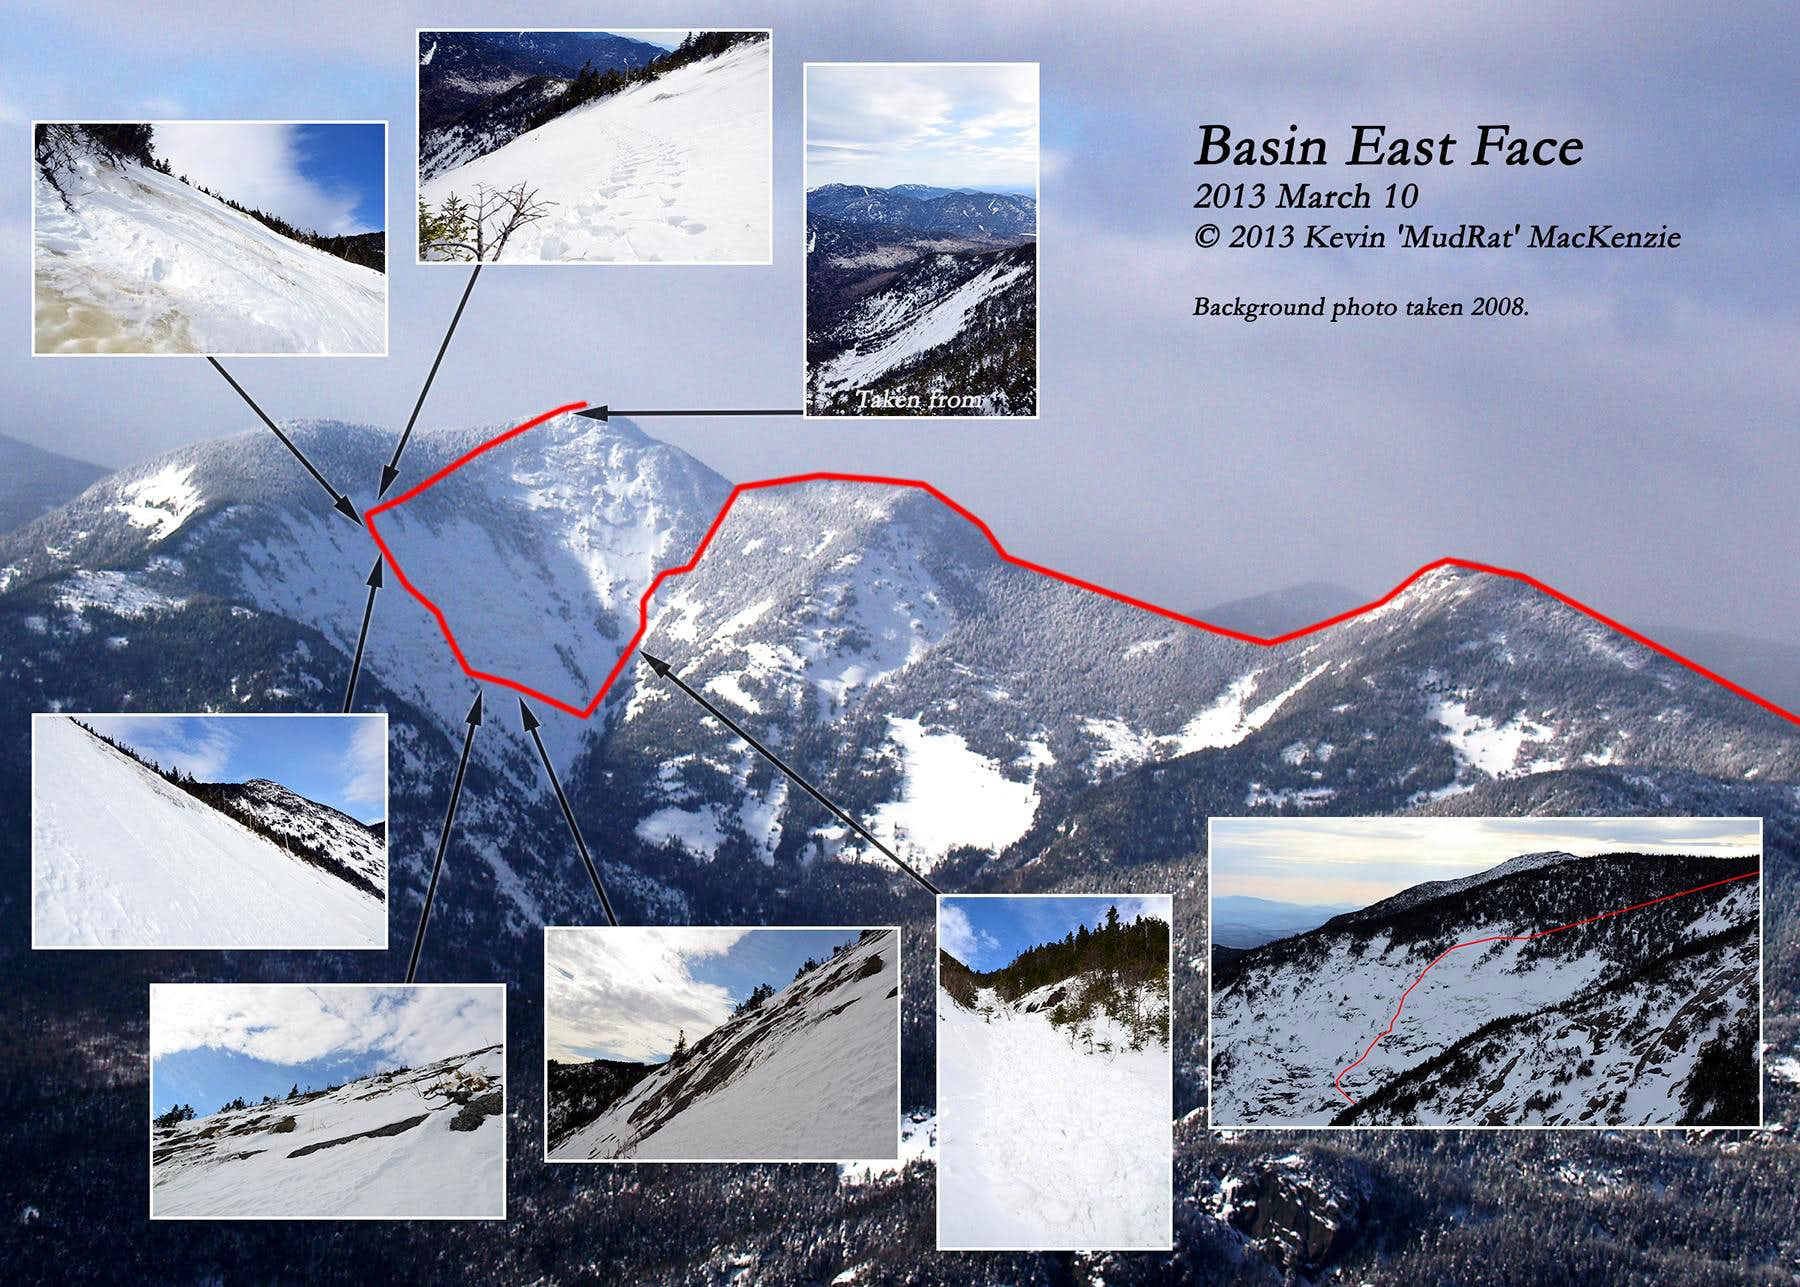 Basin Mountain East Face: Last Winter Climb of 2013